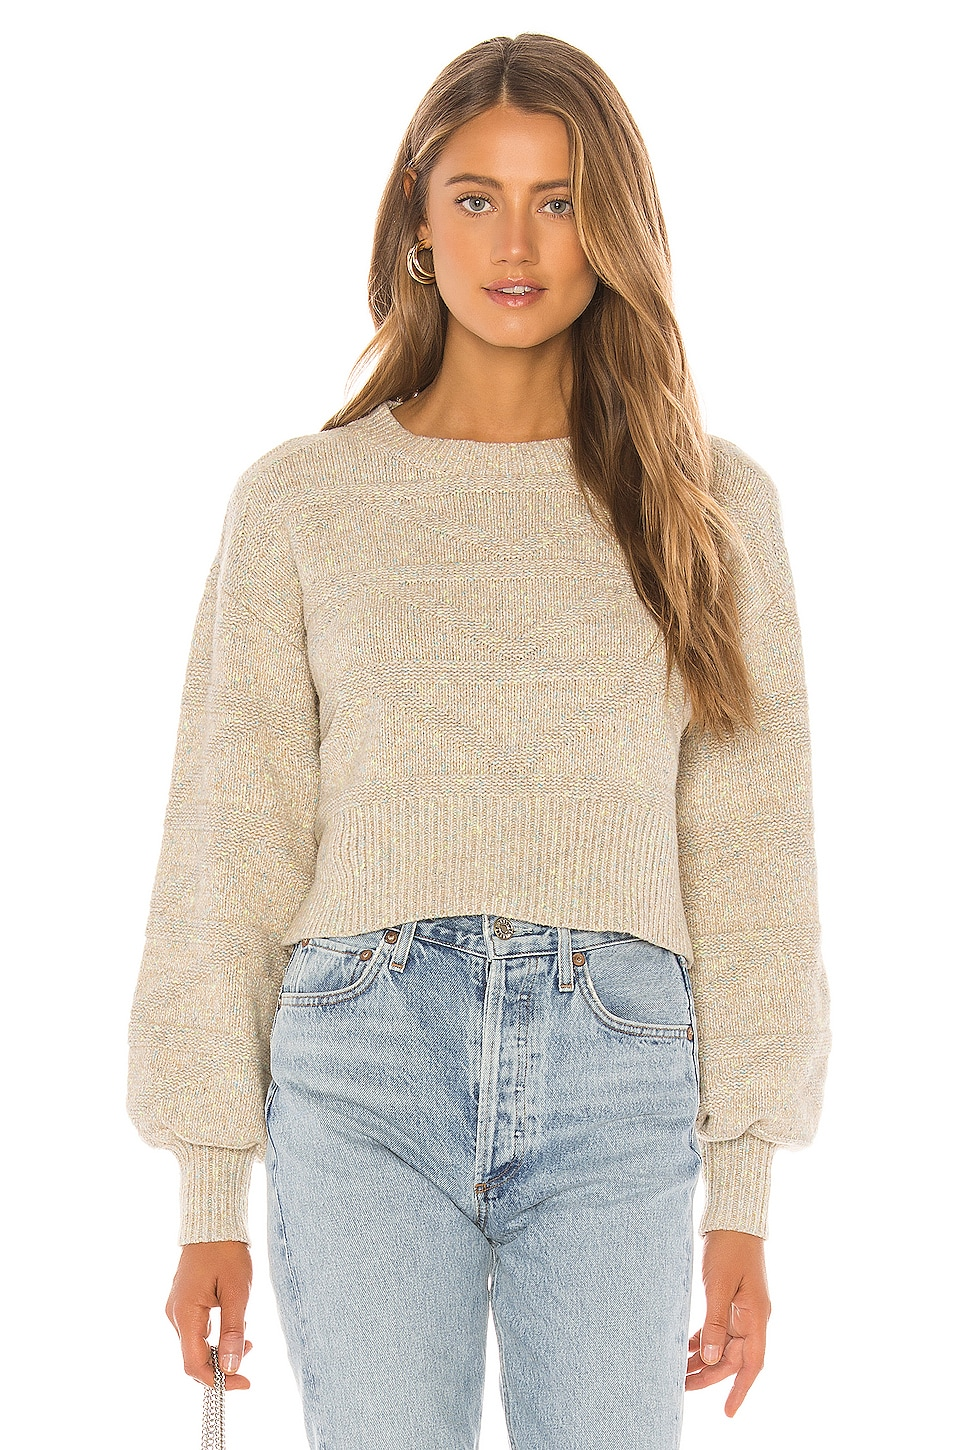 Tularosa Yara Sweater in Multi Neutral